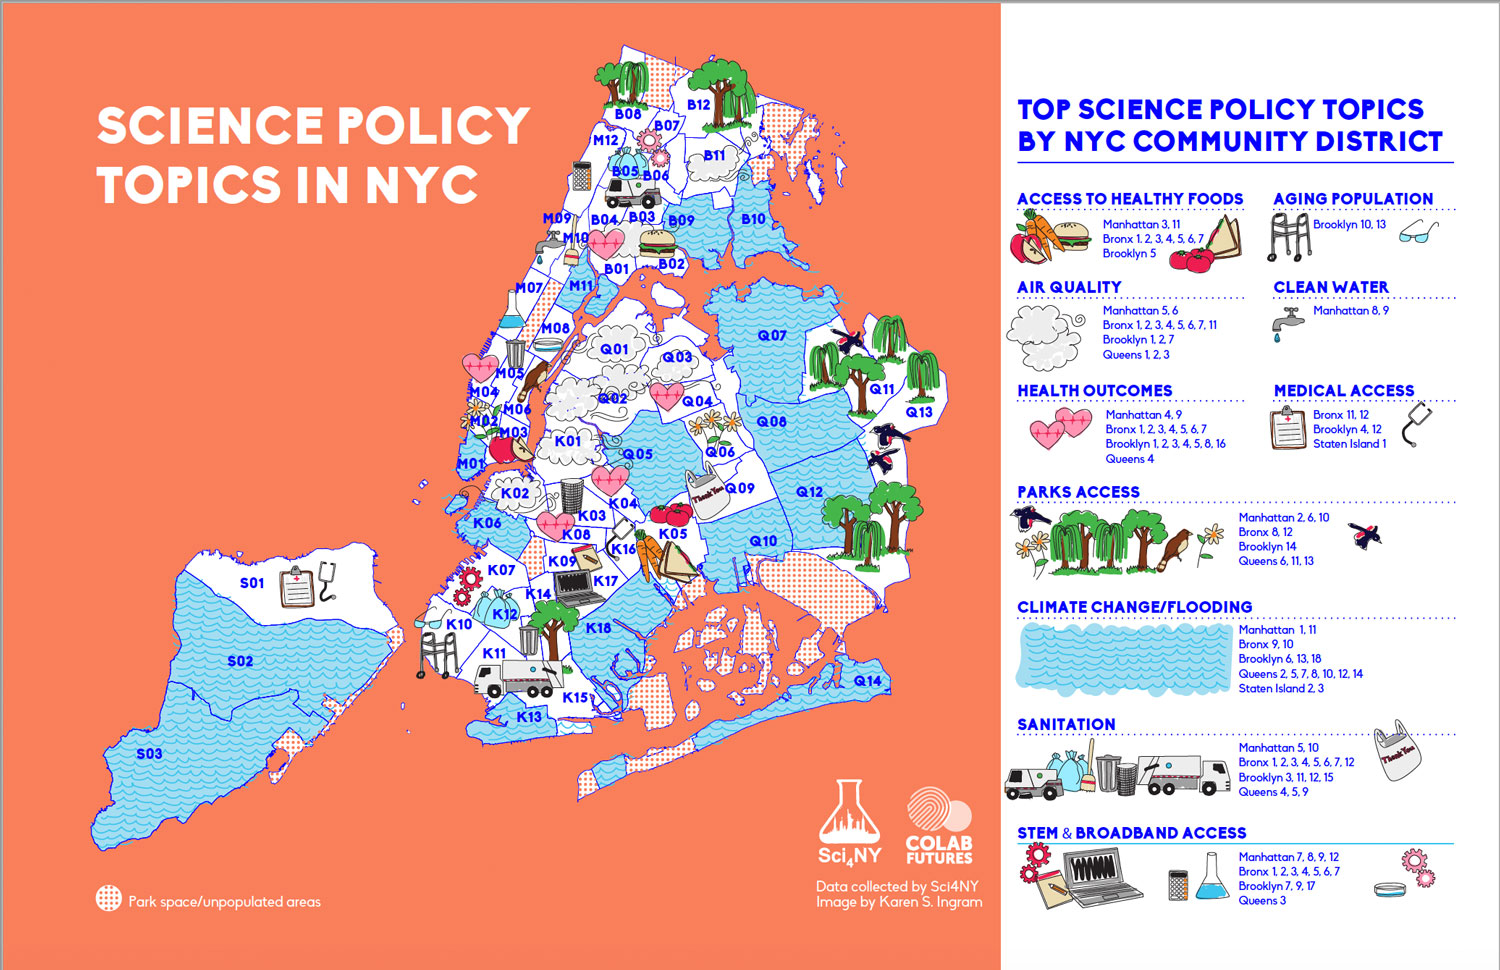 science policy topics in nyc